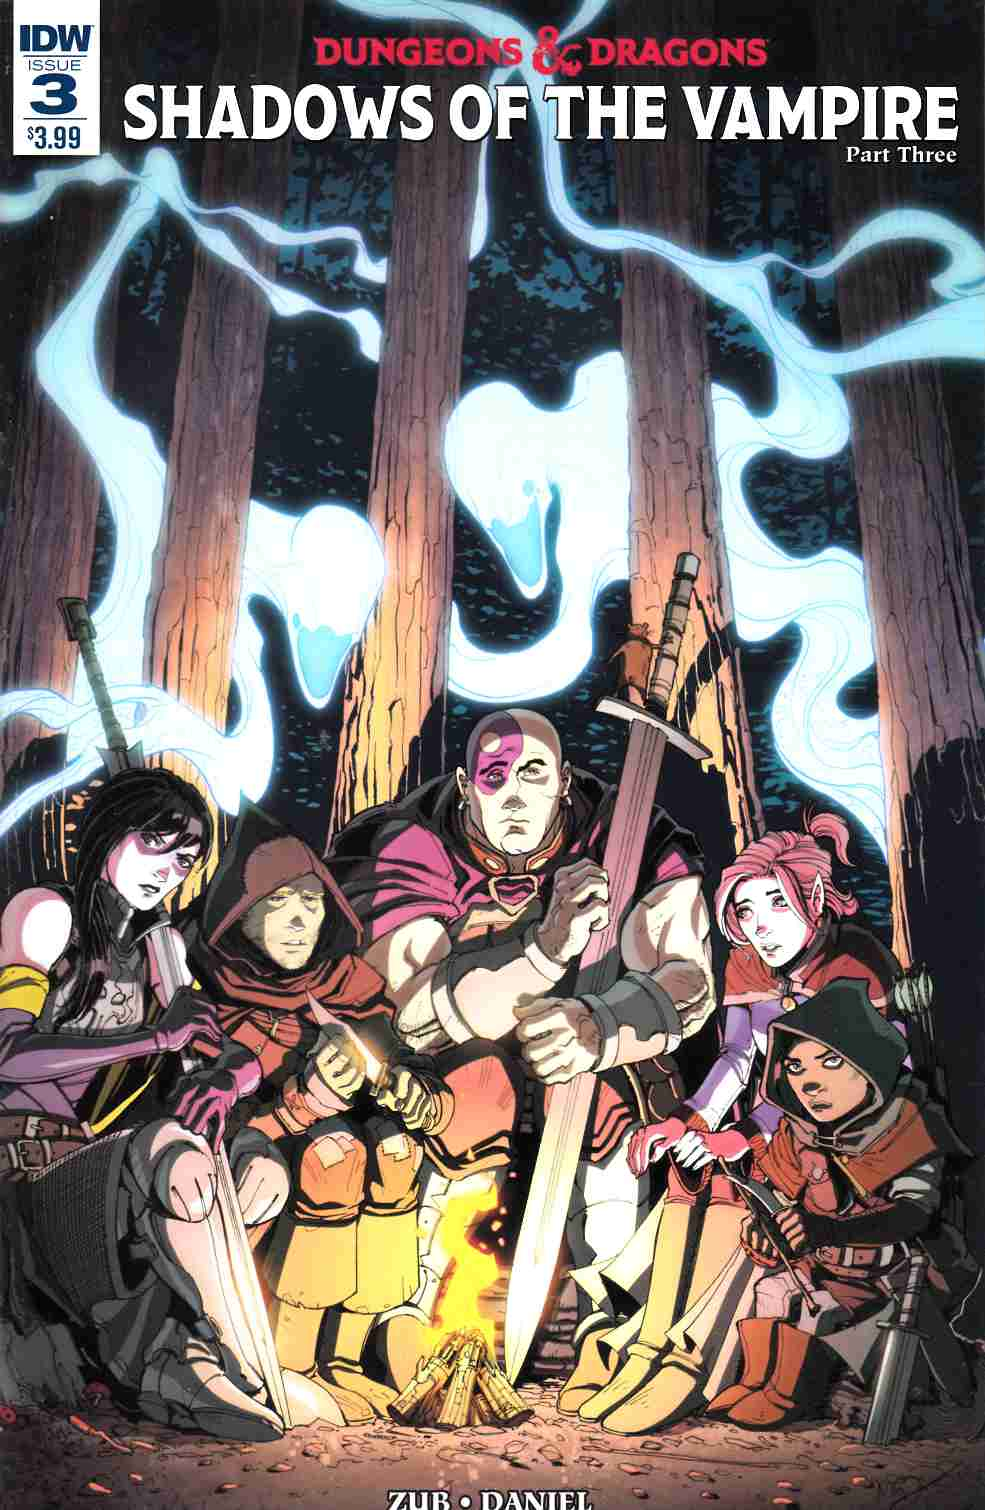 Dungeons & Dragons (2016) #3 [IDW Comic] THUMBNAIL